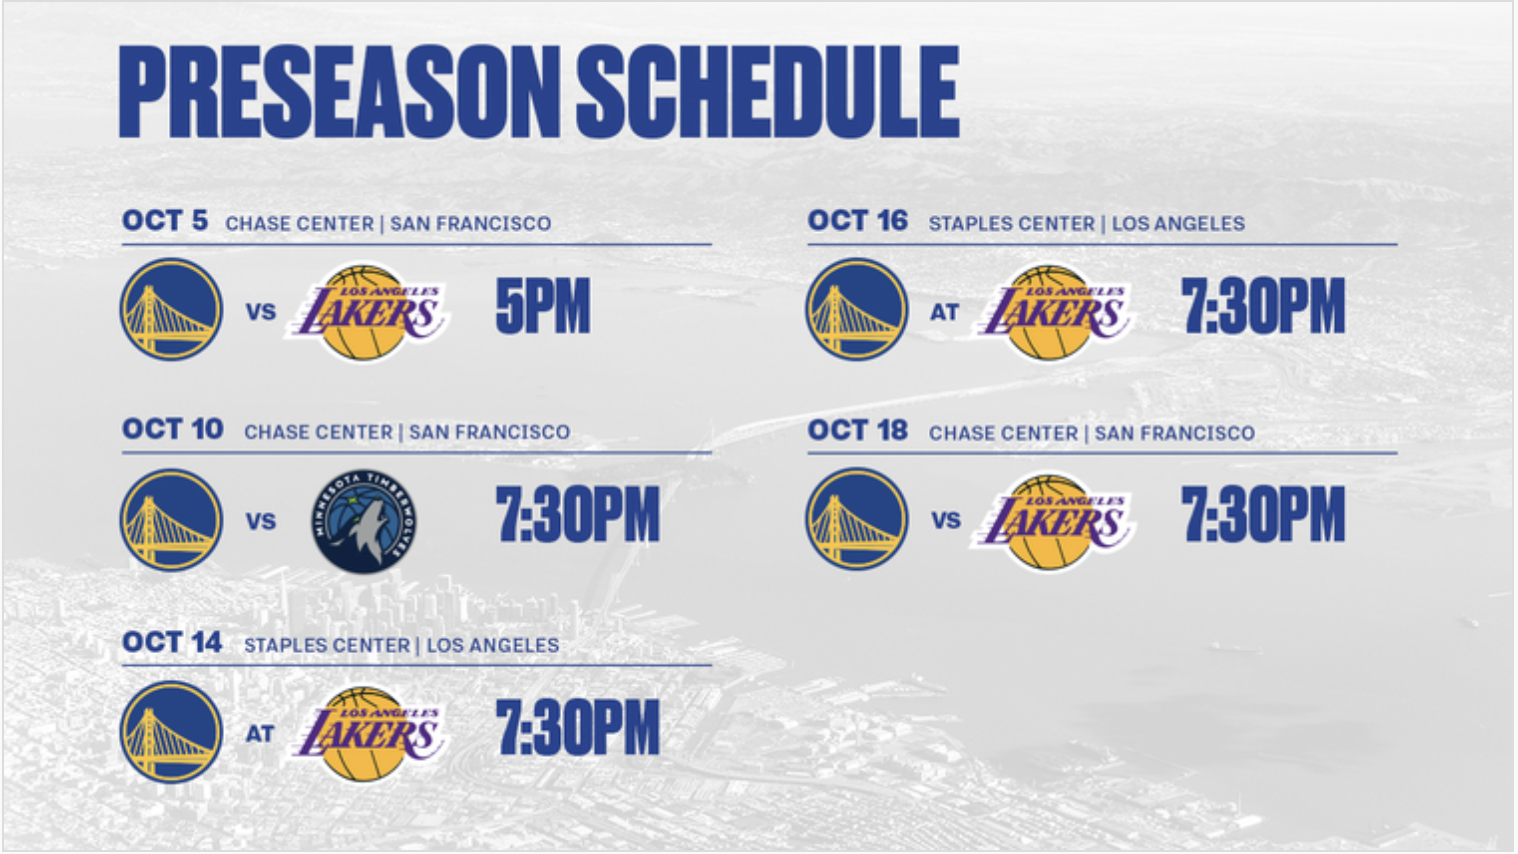 GSW 2019-20 NBA Preseason Schedule and Fixtures